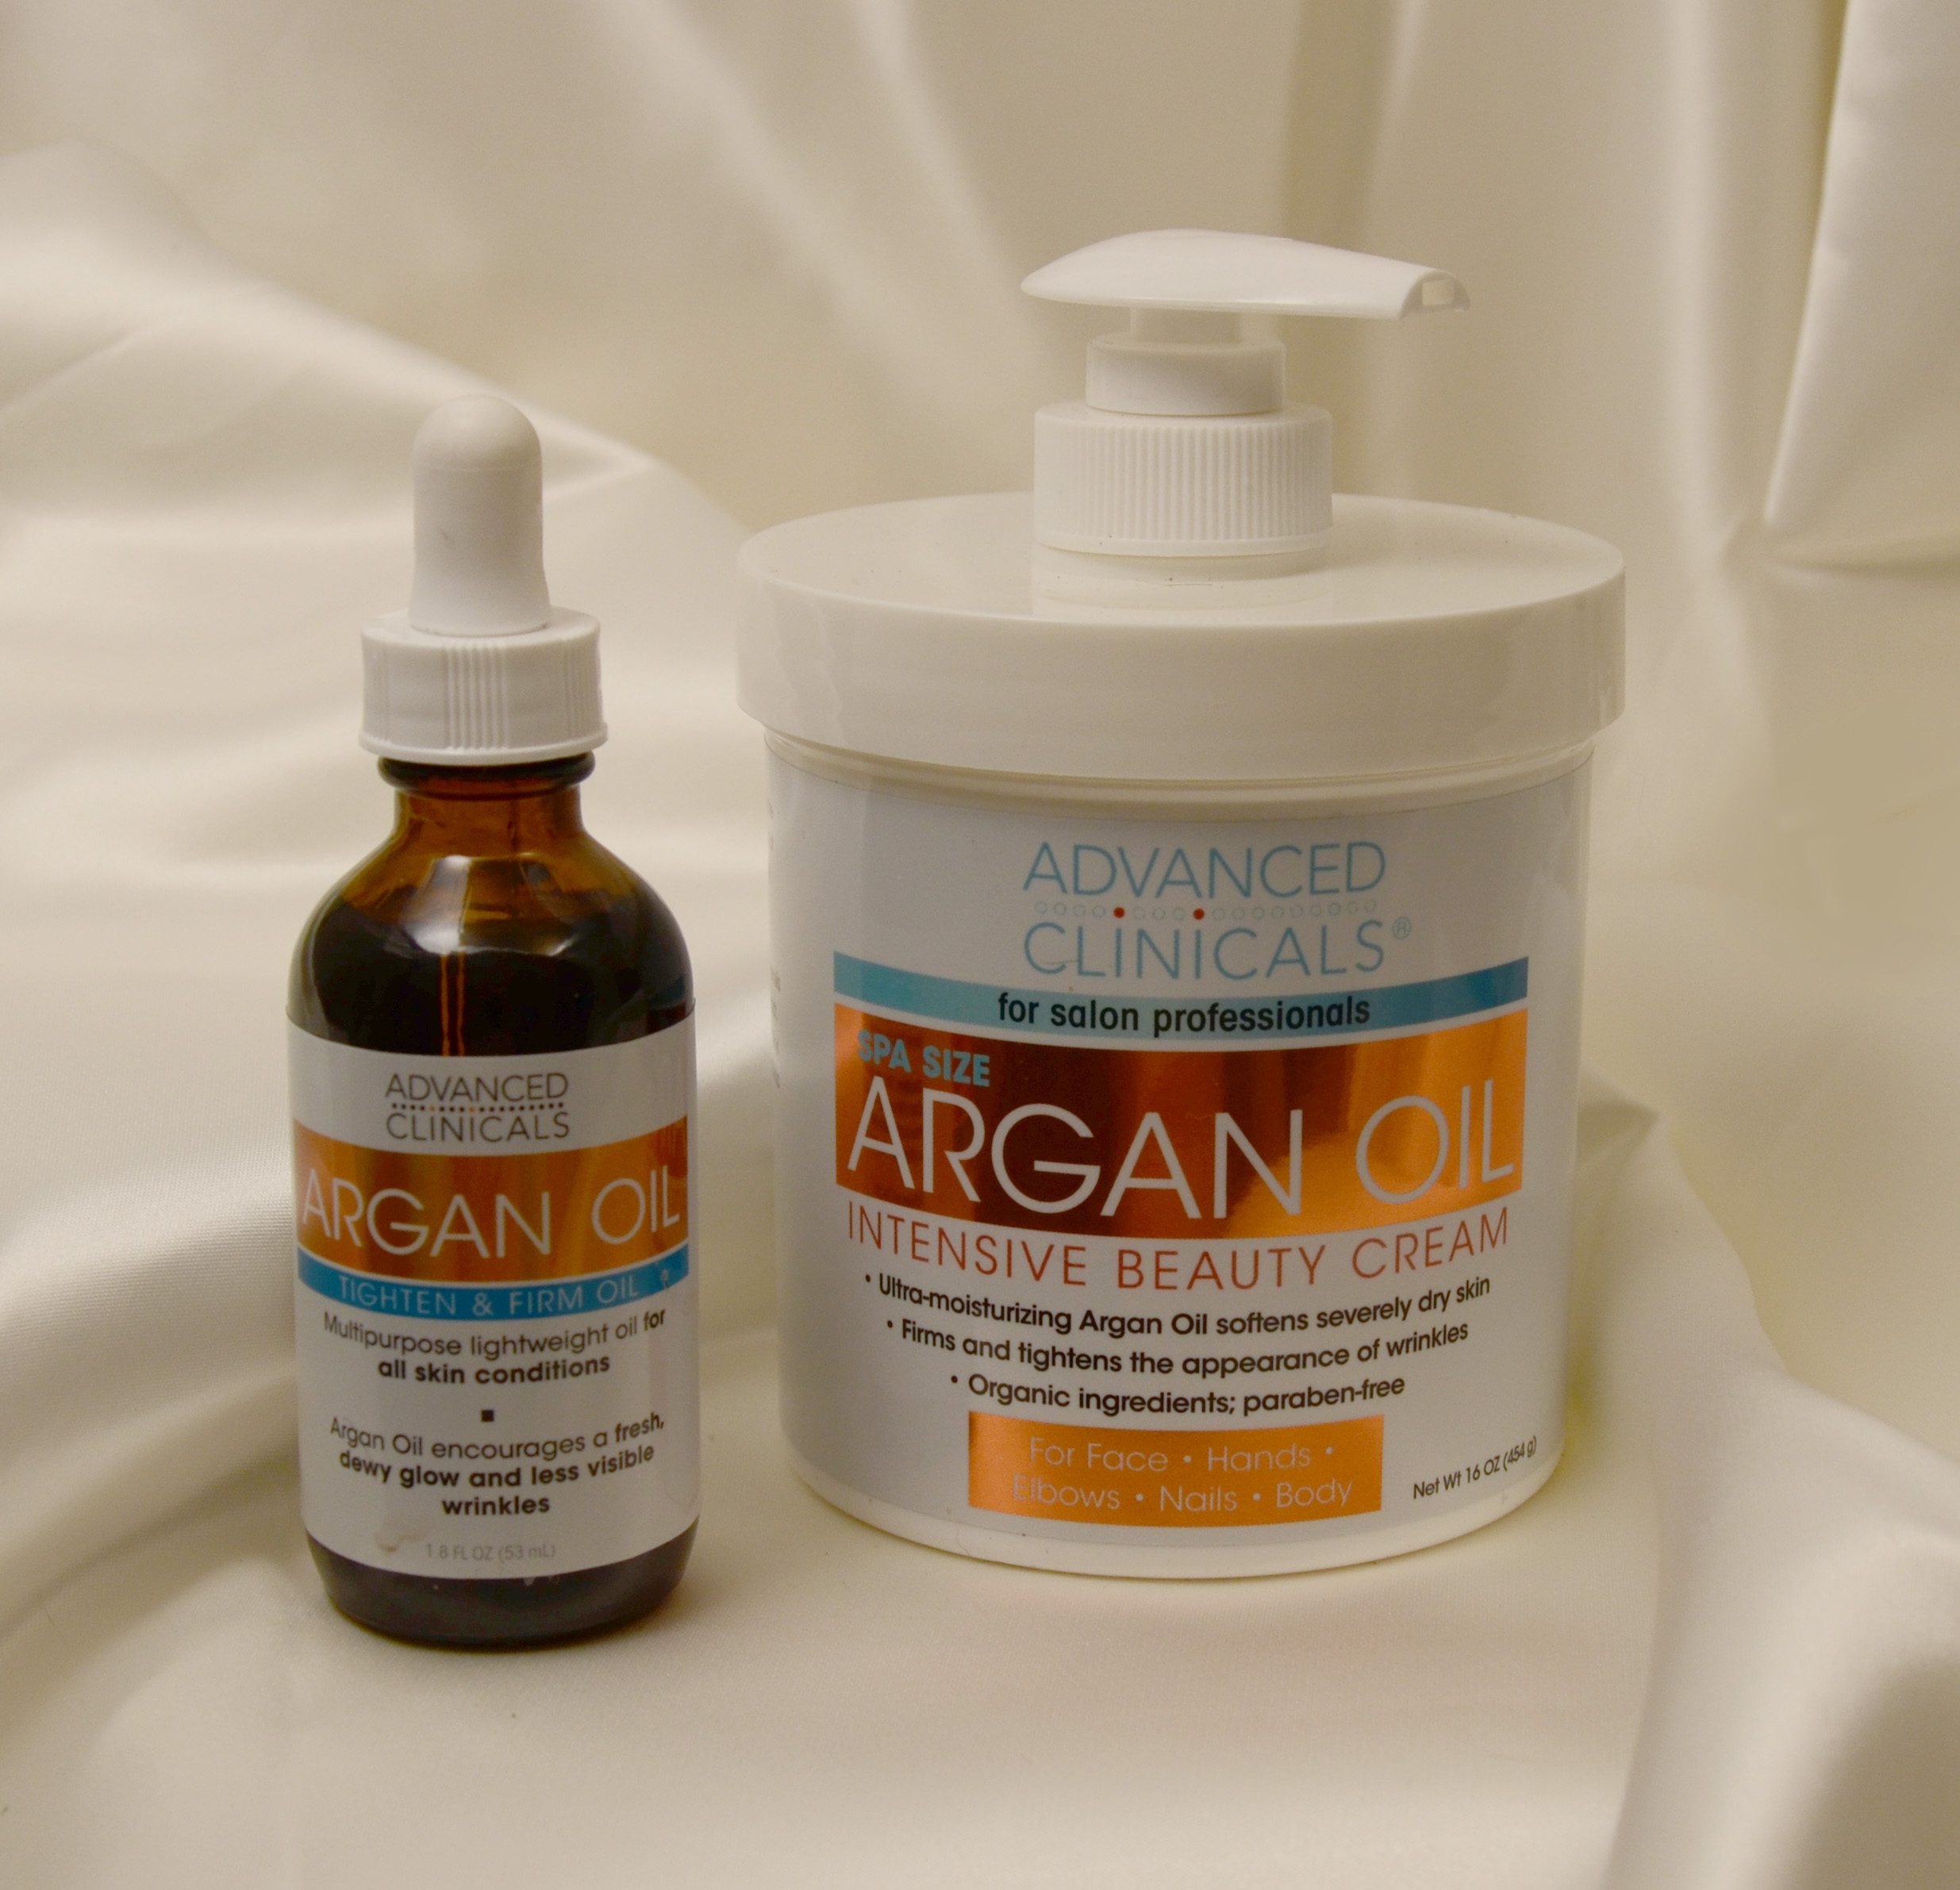 Argan Oil is a super restorative ingredient for skin, but what else are you doing or NOT doing?